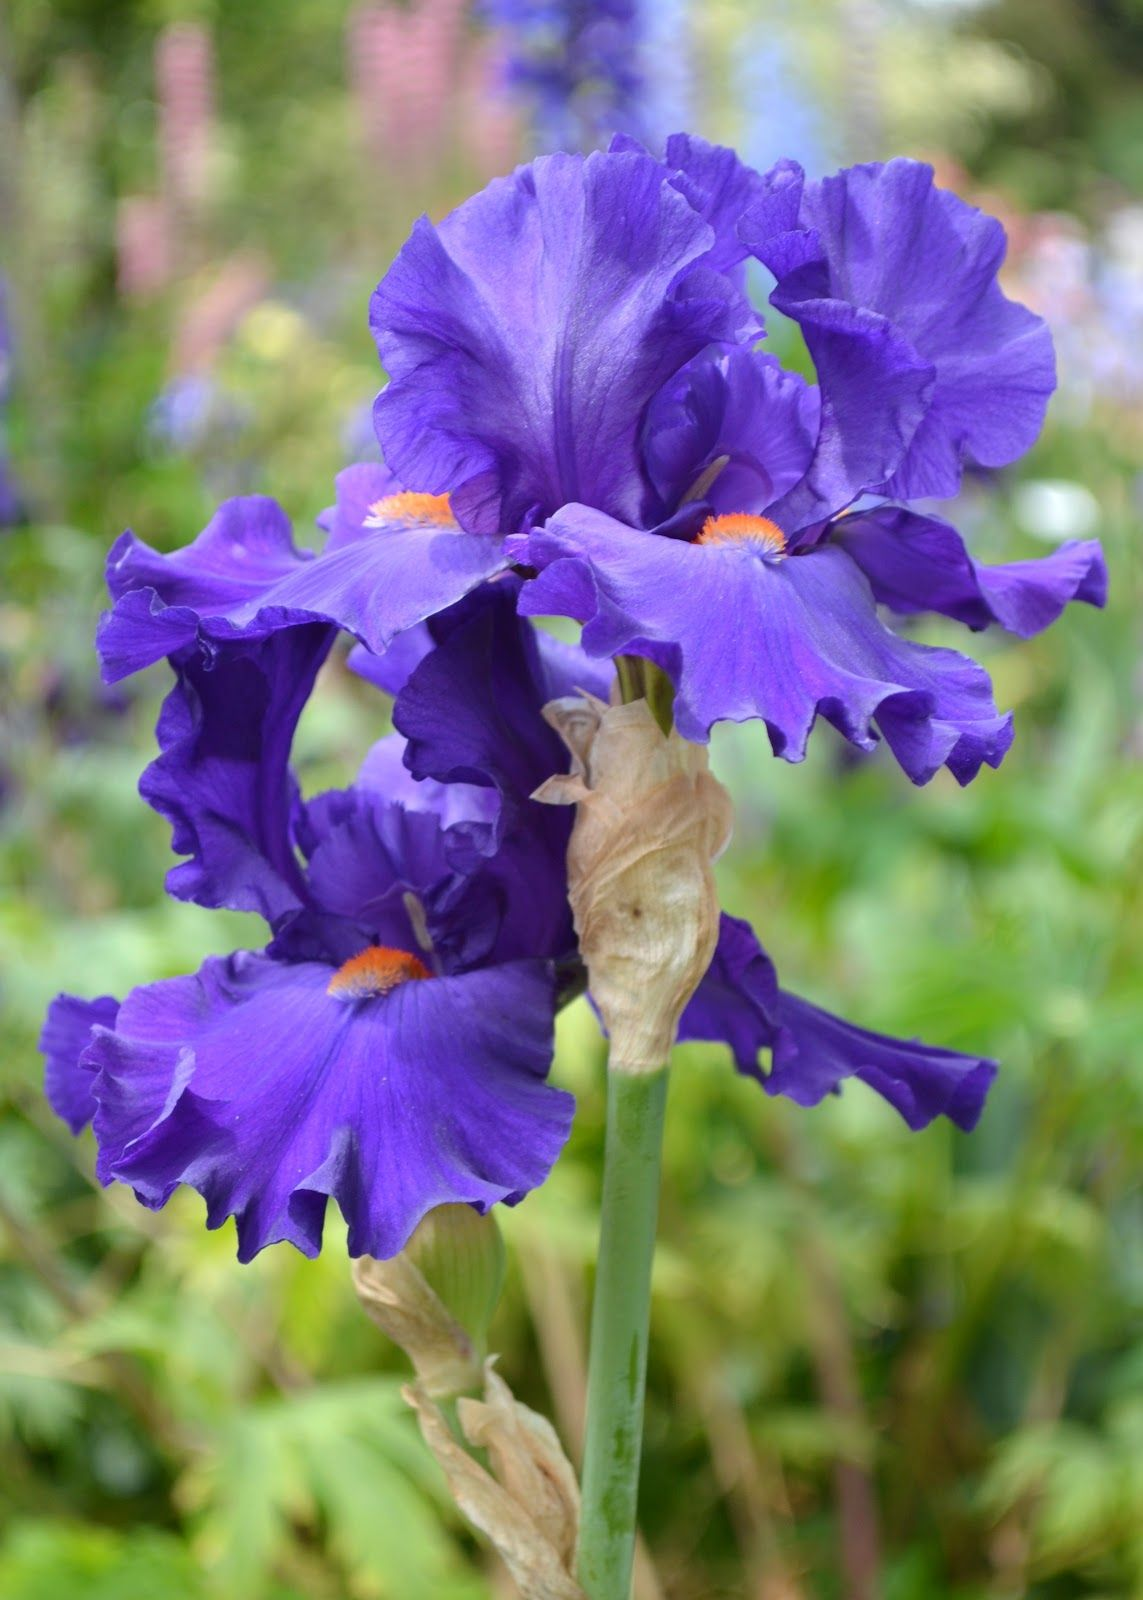 Pin by gosia fedele on nature scapes and miracles pinterest iris i visited schreiners and discovered that there are many varieties of irises izmirmasajfo